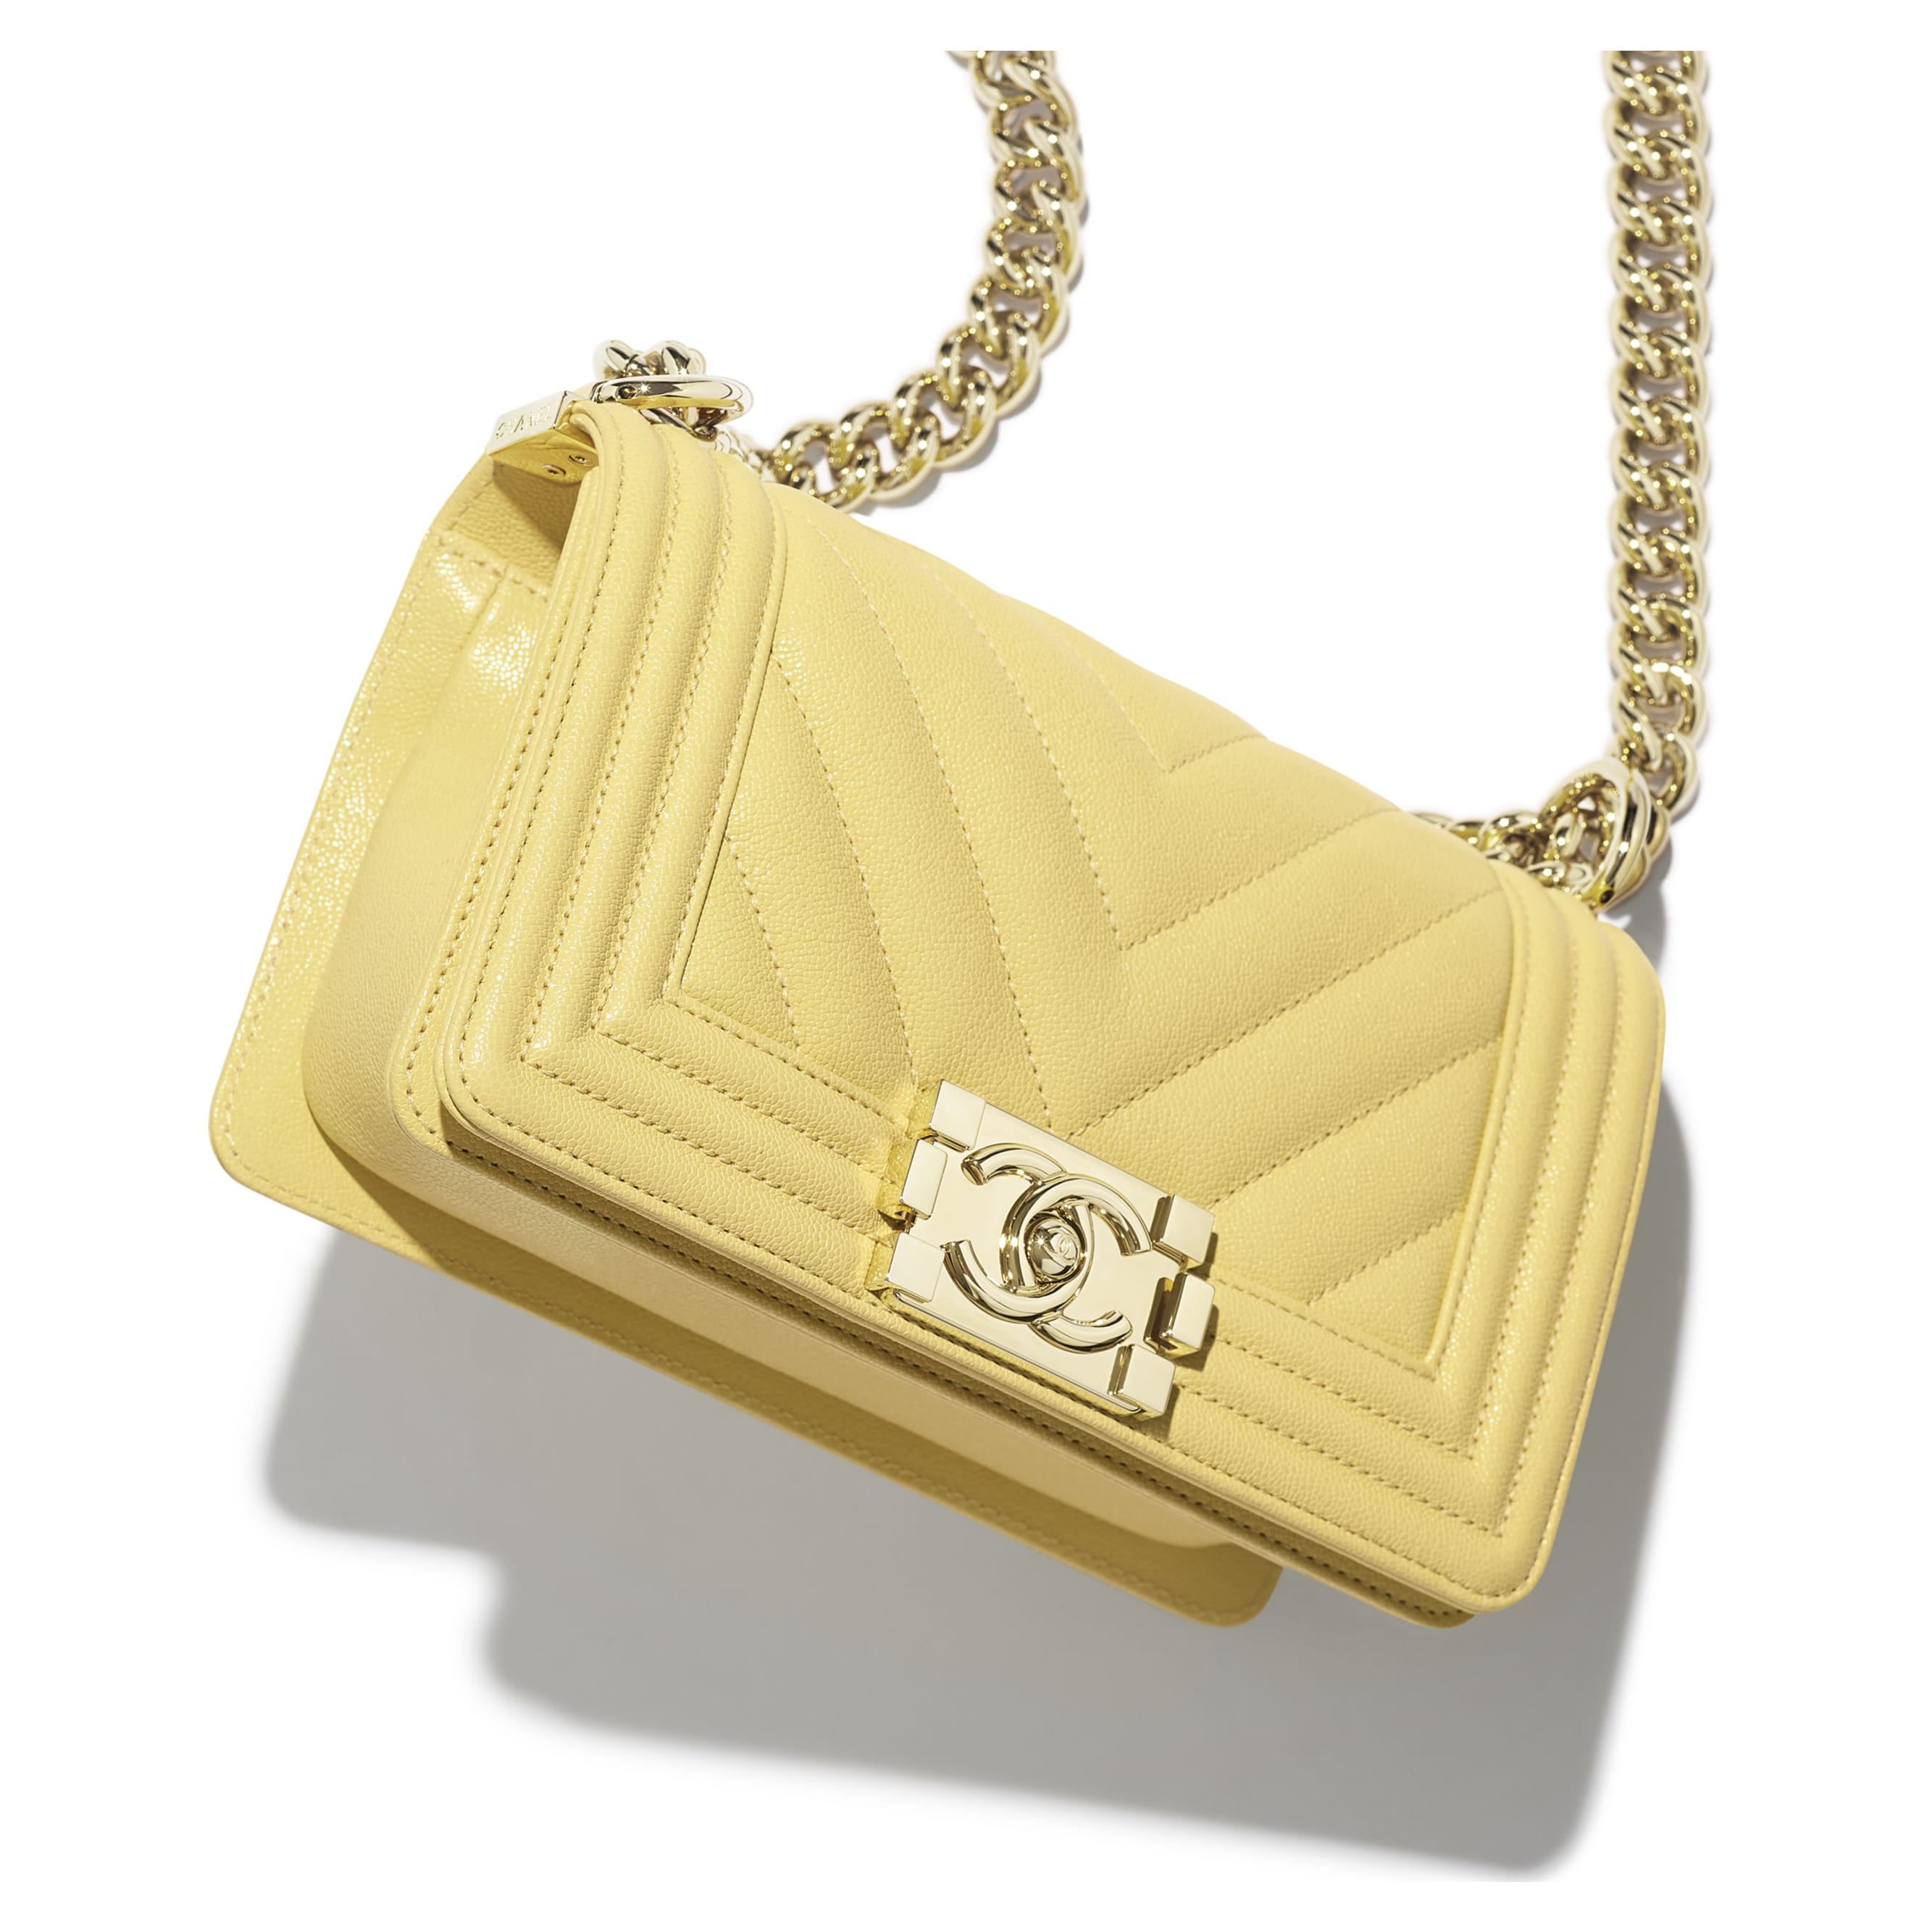 Small BOY CHANEL Handbag - Yellow - Grained Calfskin & Gold-Tone Metal - Extra view - see standard sized version